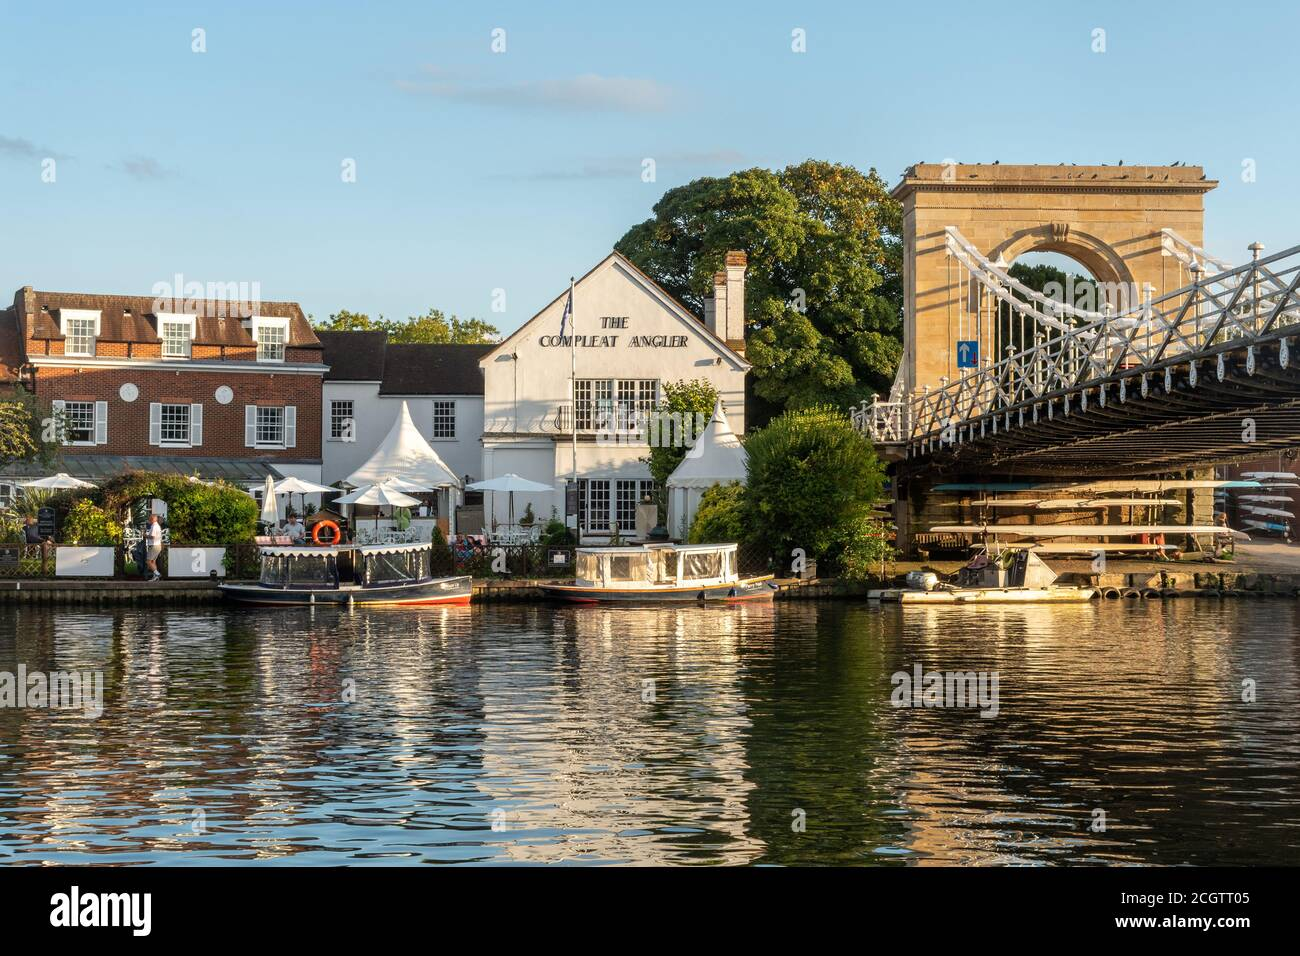 Marlow, a picturesque market town in Buckinghamshire, England, UK, on the River Thames Stock Photo